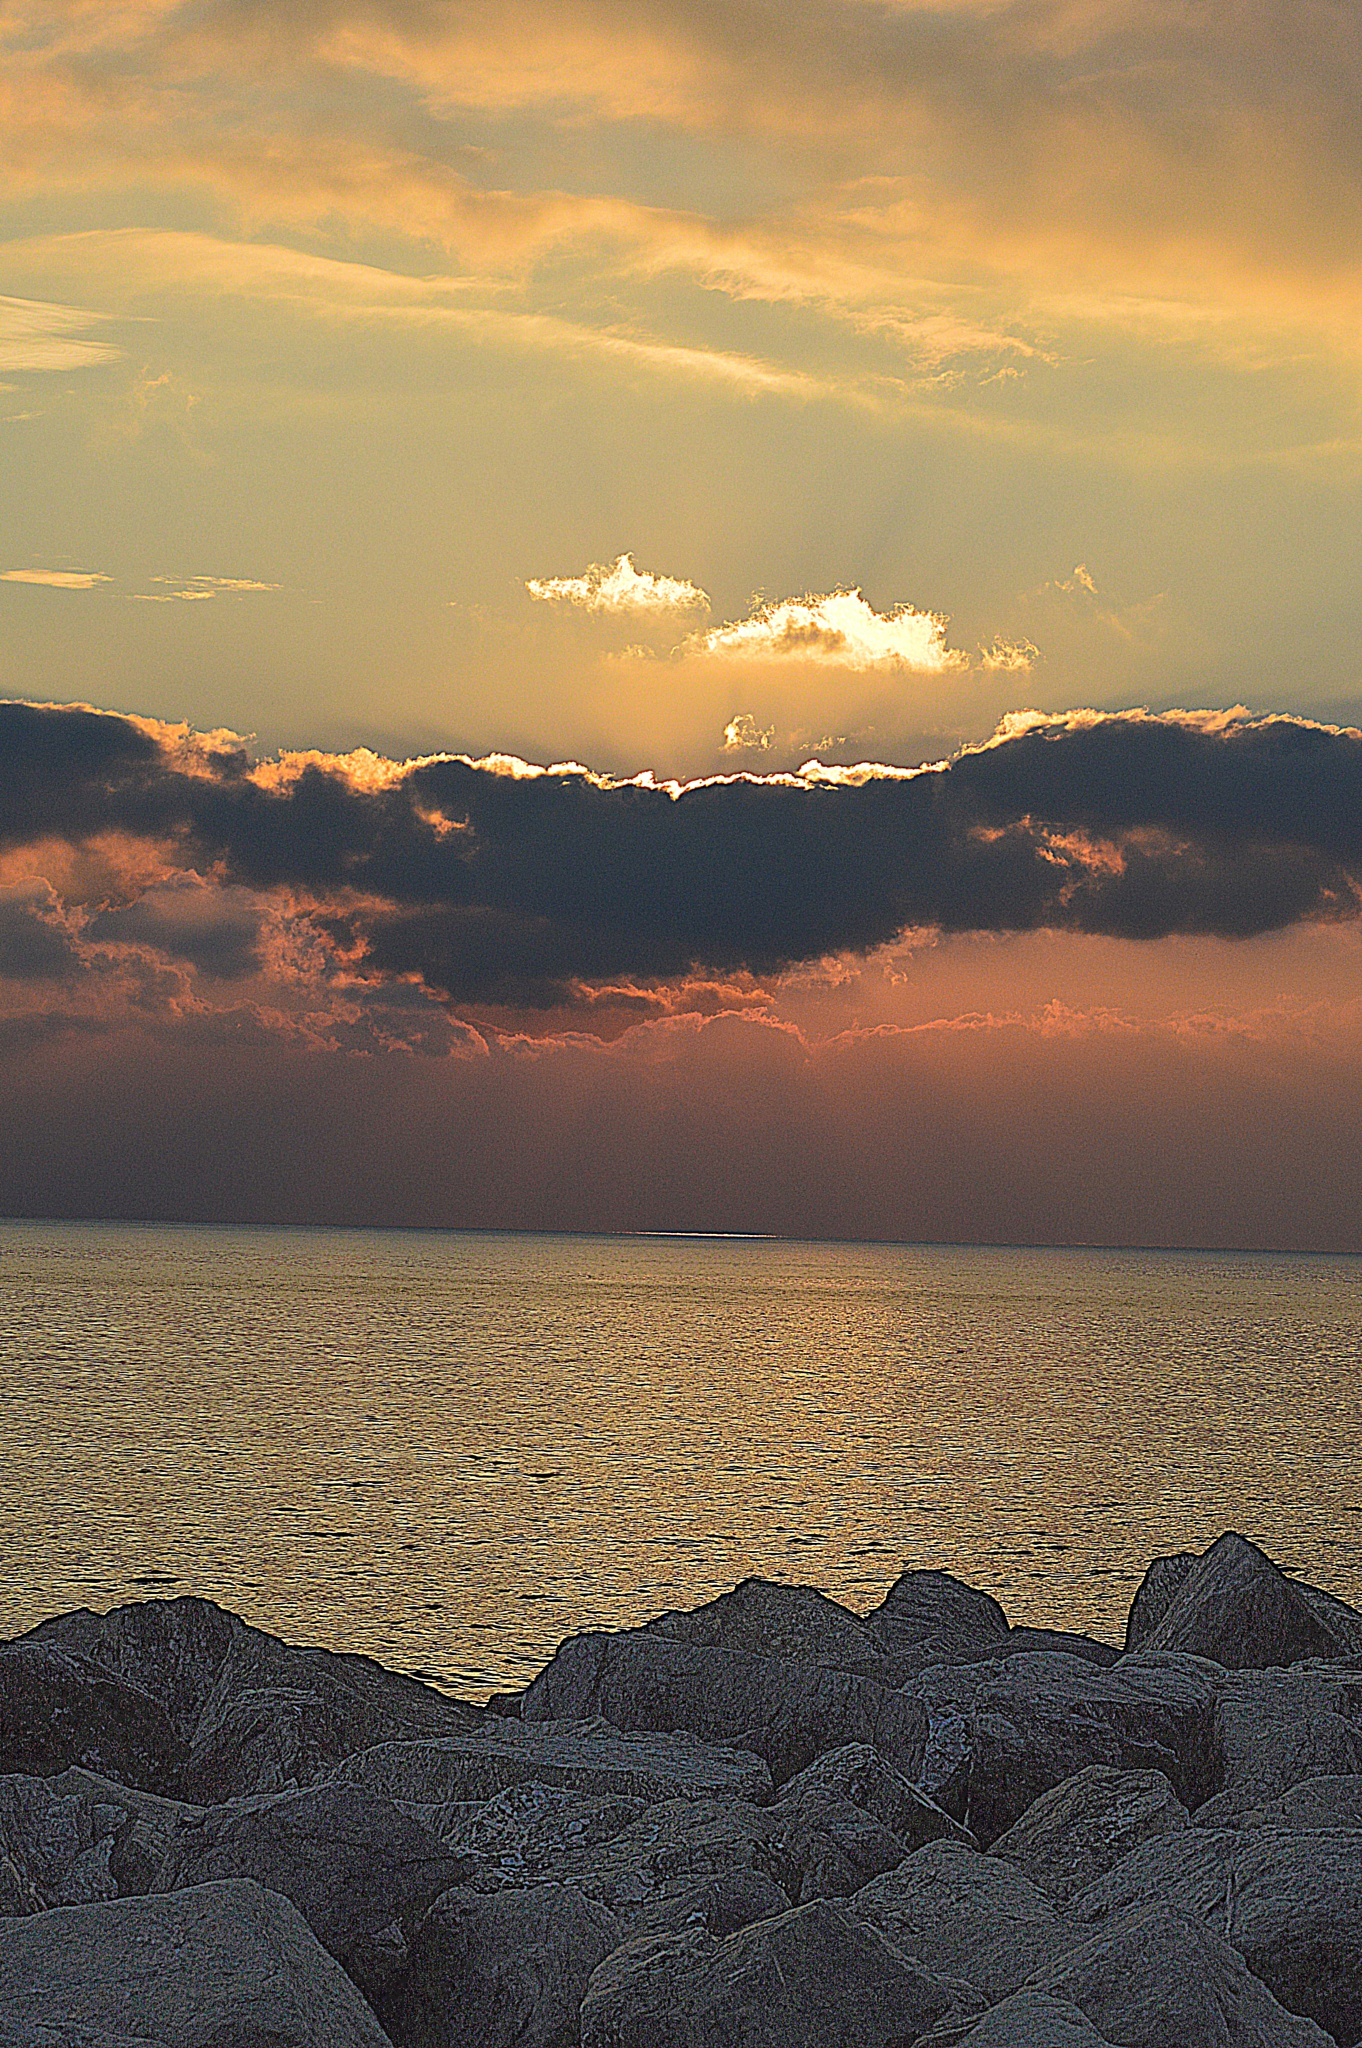 contrasts of light by Mistral Moratti